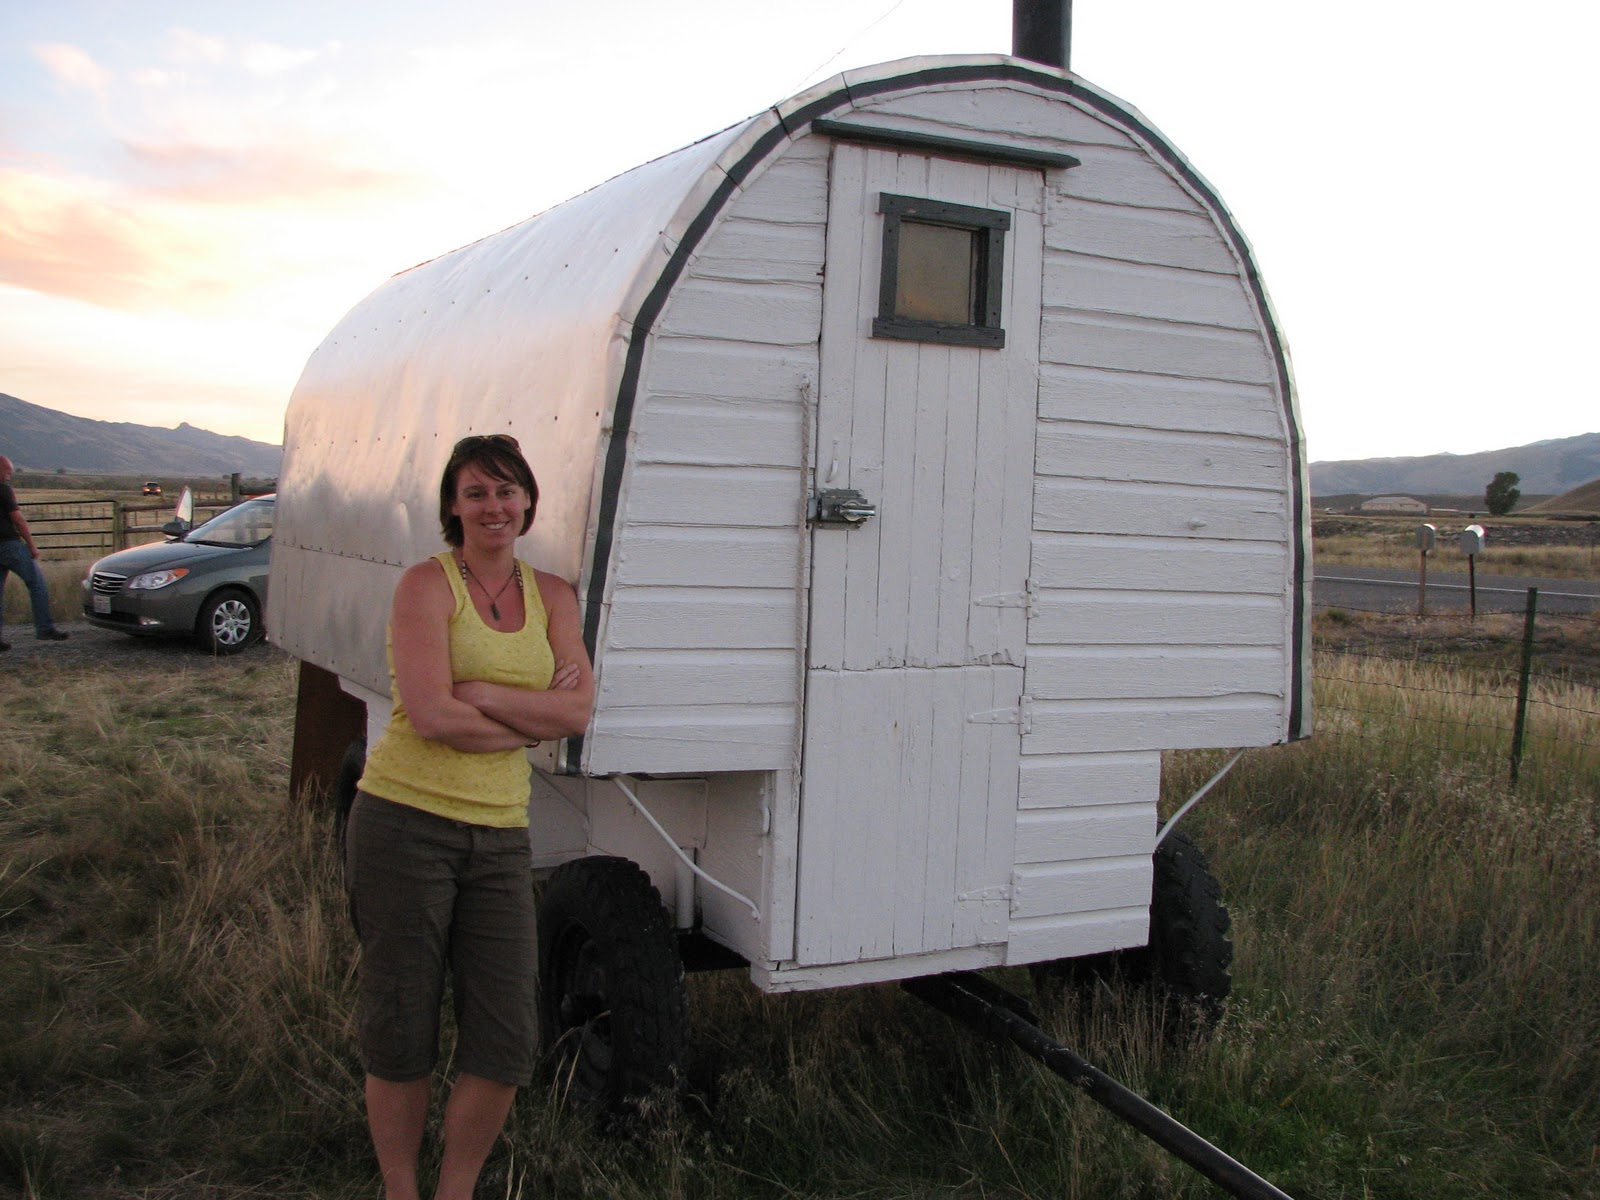 Pin Living Wagon For Sale Image Search Results On Pinterest .